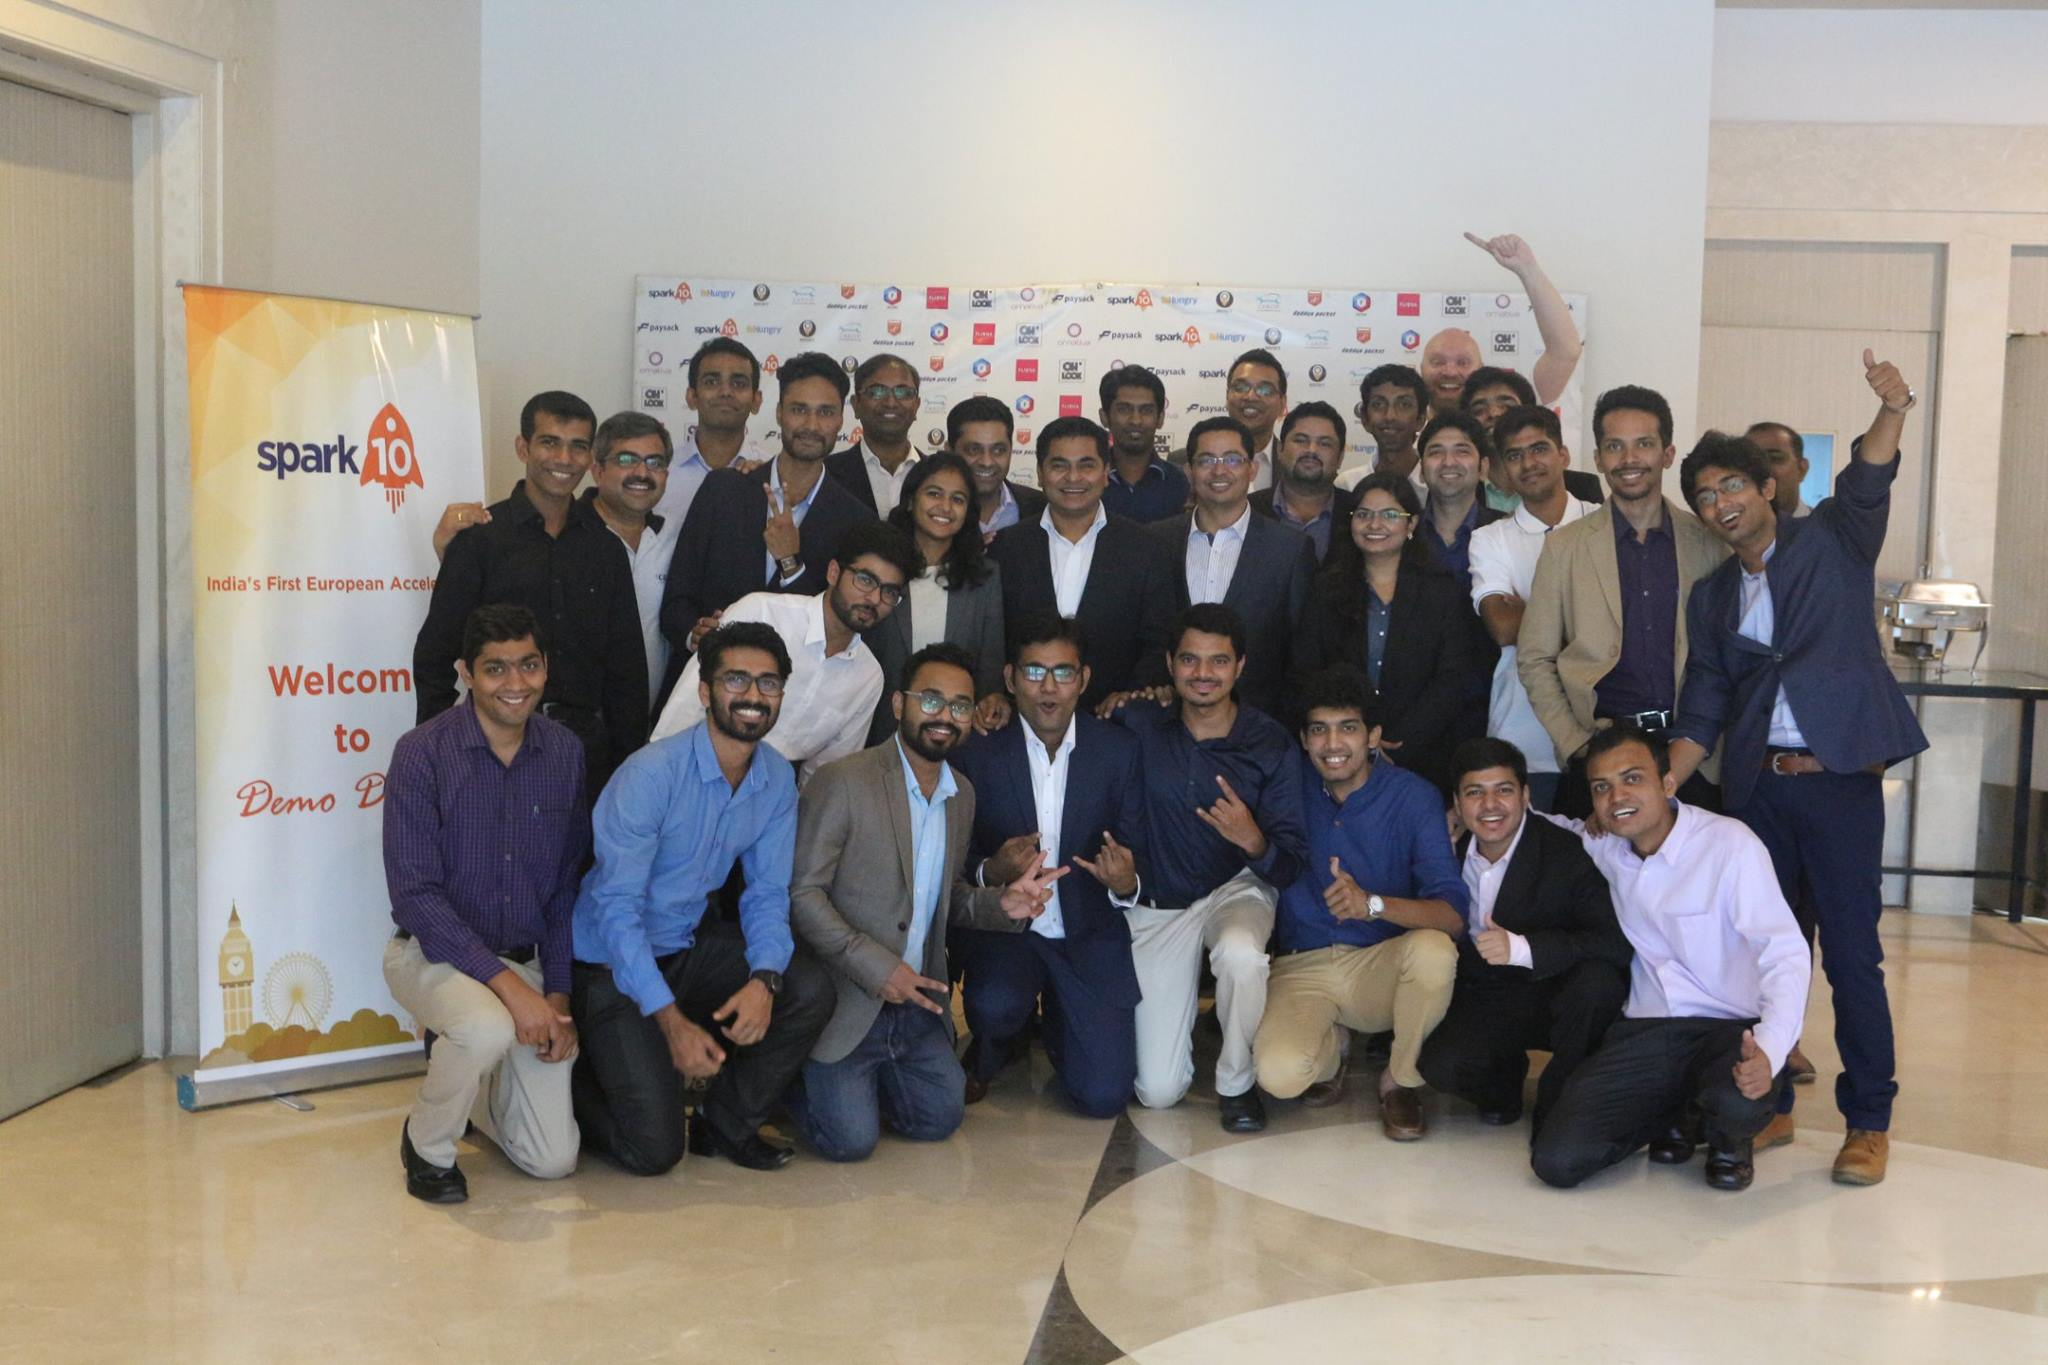 Spark10 launches its newly designed cohort for Indian Tech Startups